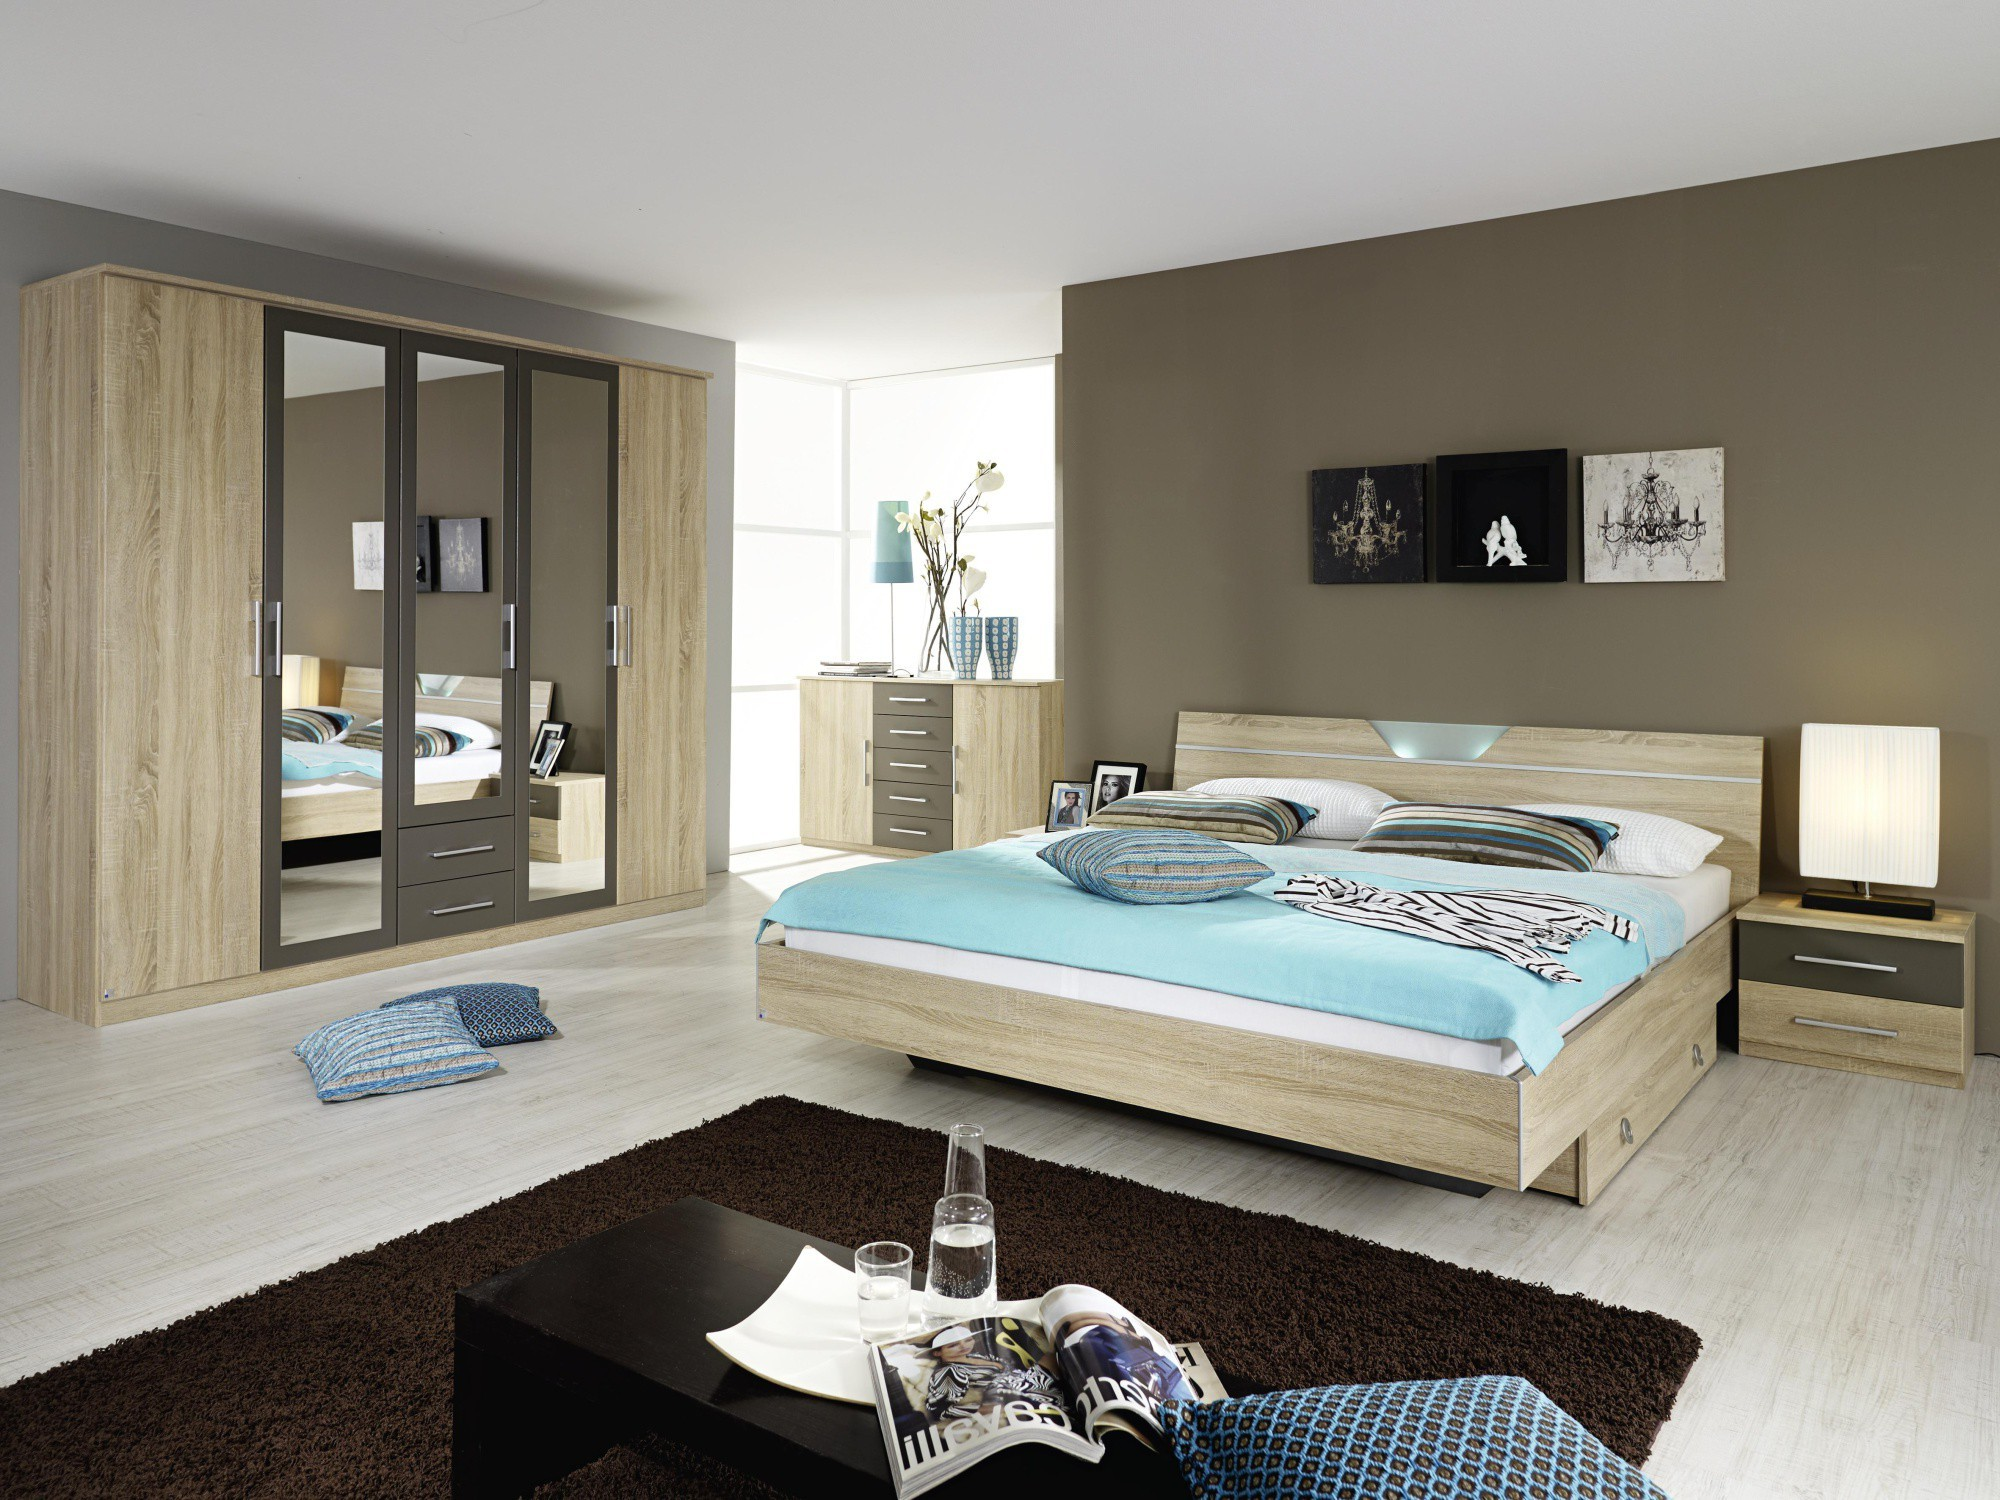 dcoration chambre coucher adulte contemporaine - Decoration Chambre A Coucher Adulte Photos